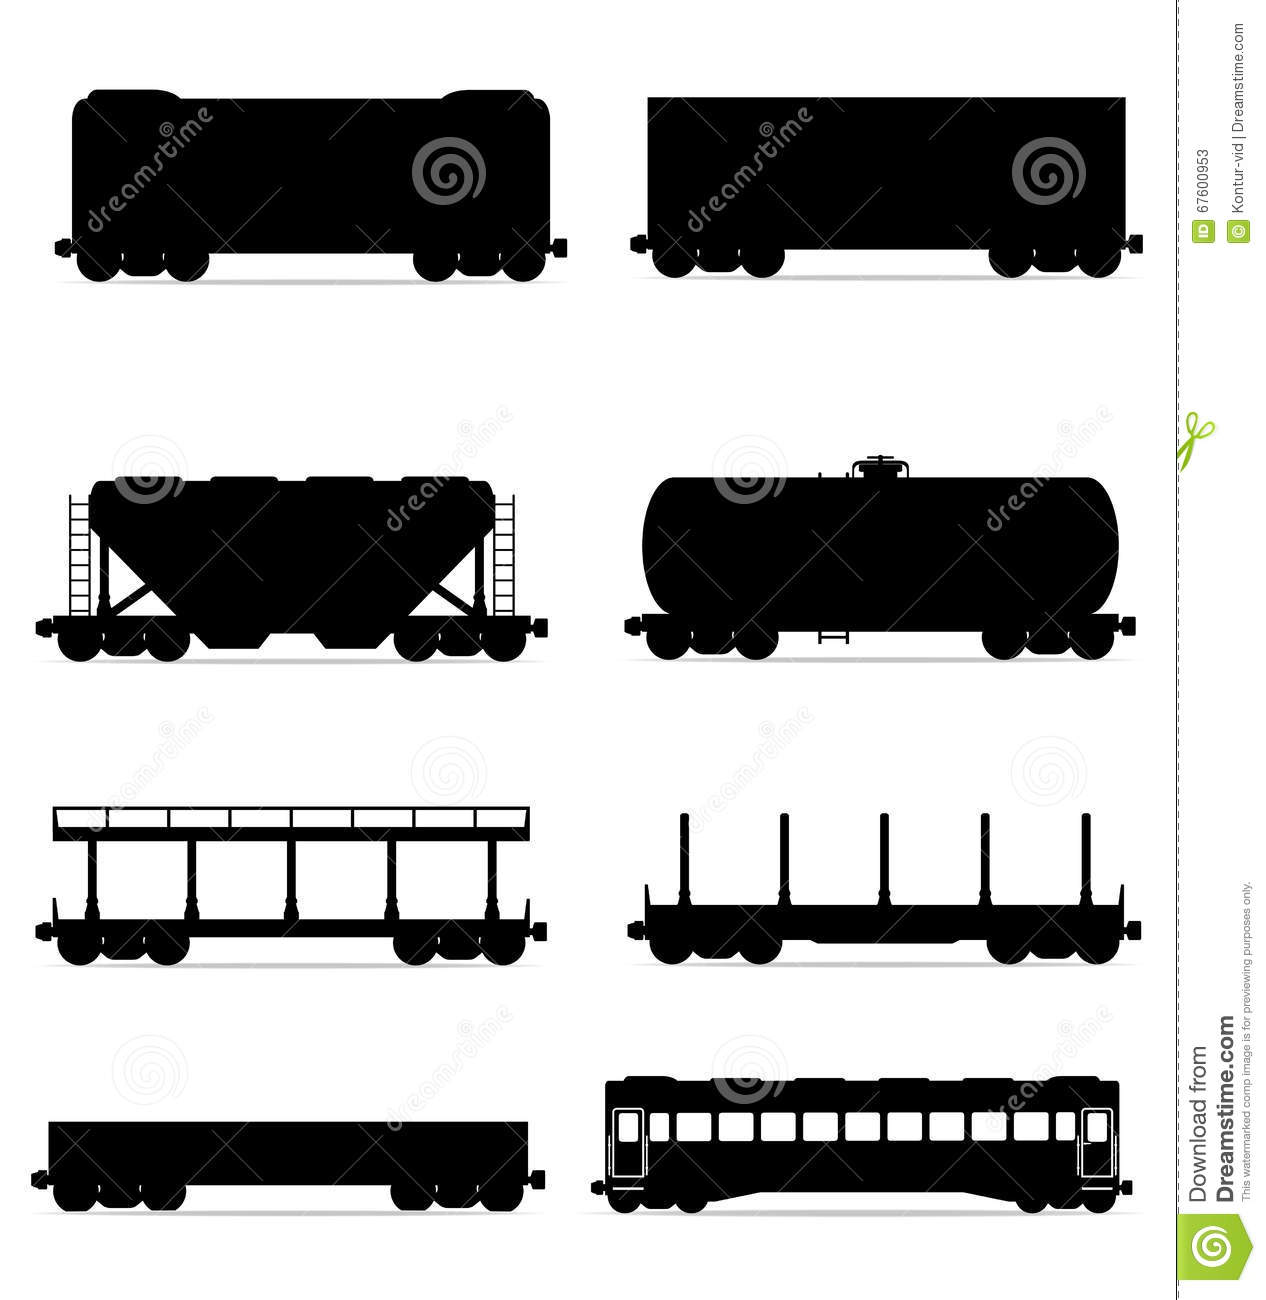 Set Icons Railway Carriage Train Black Outline Silhouette Vector.